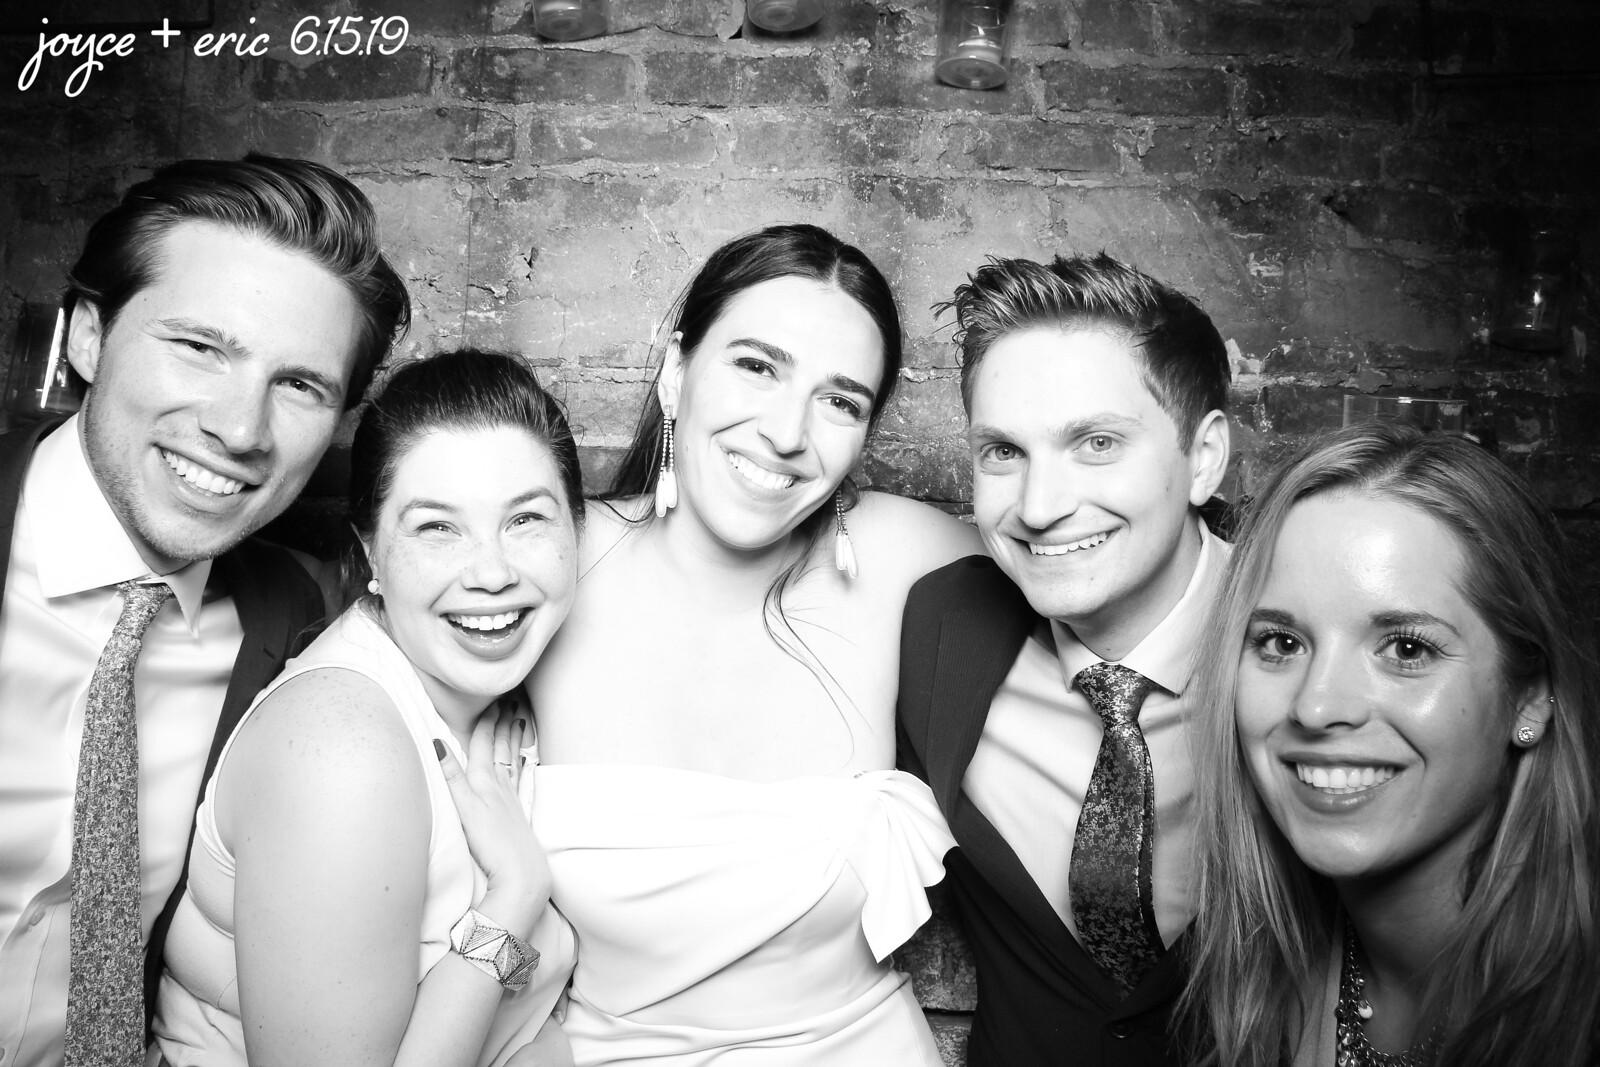 Chicago_Vintage_Wedding_Photobooth_New_Leaf_07.jpg